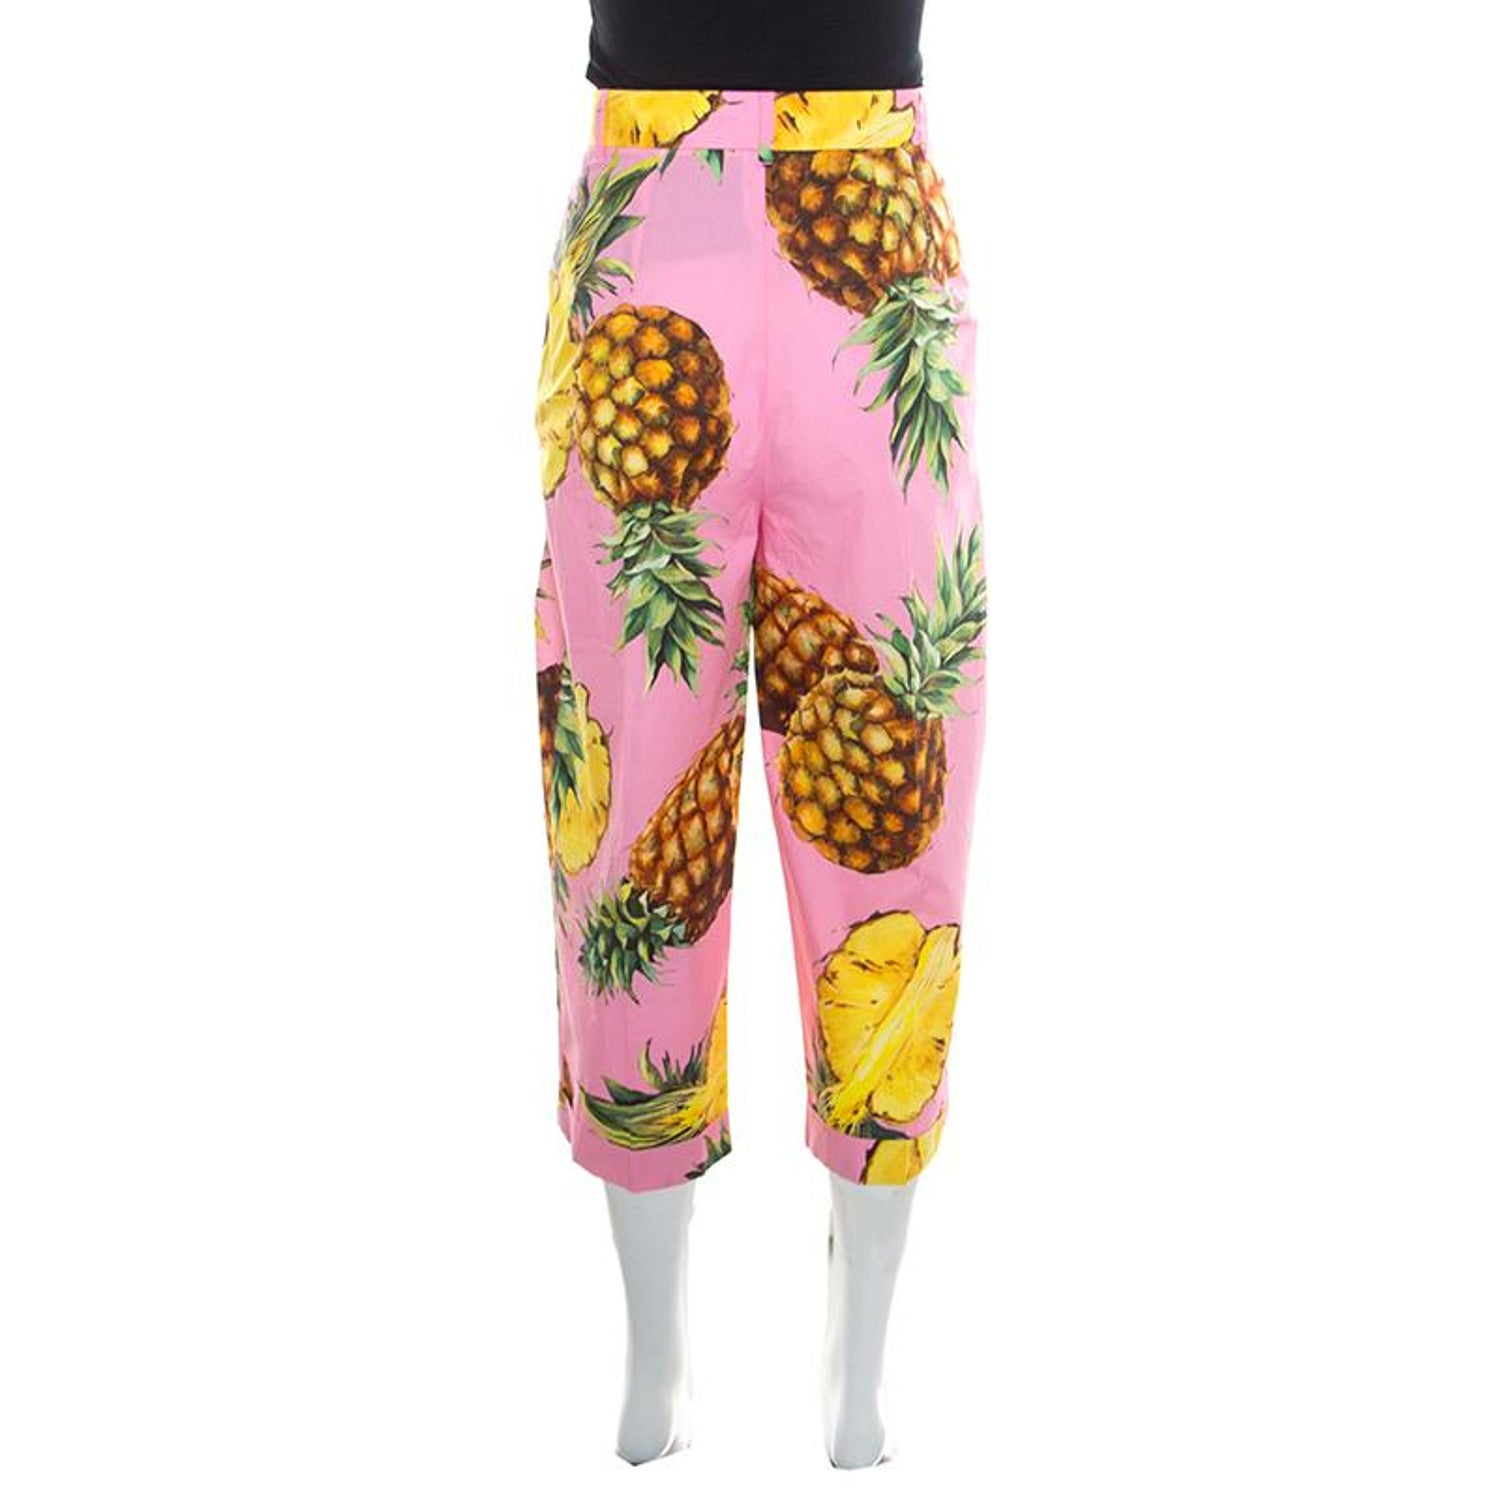 b789fcbcb984 Dolce and Gabbana Pineapple Printed Cotton High Waist Wide Leg Cropped Pants  M For Sale at 1stdibs